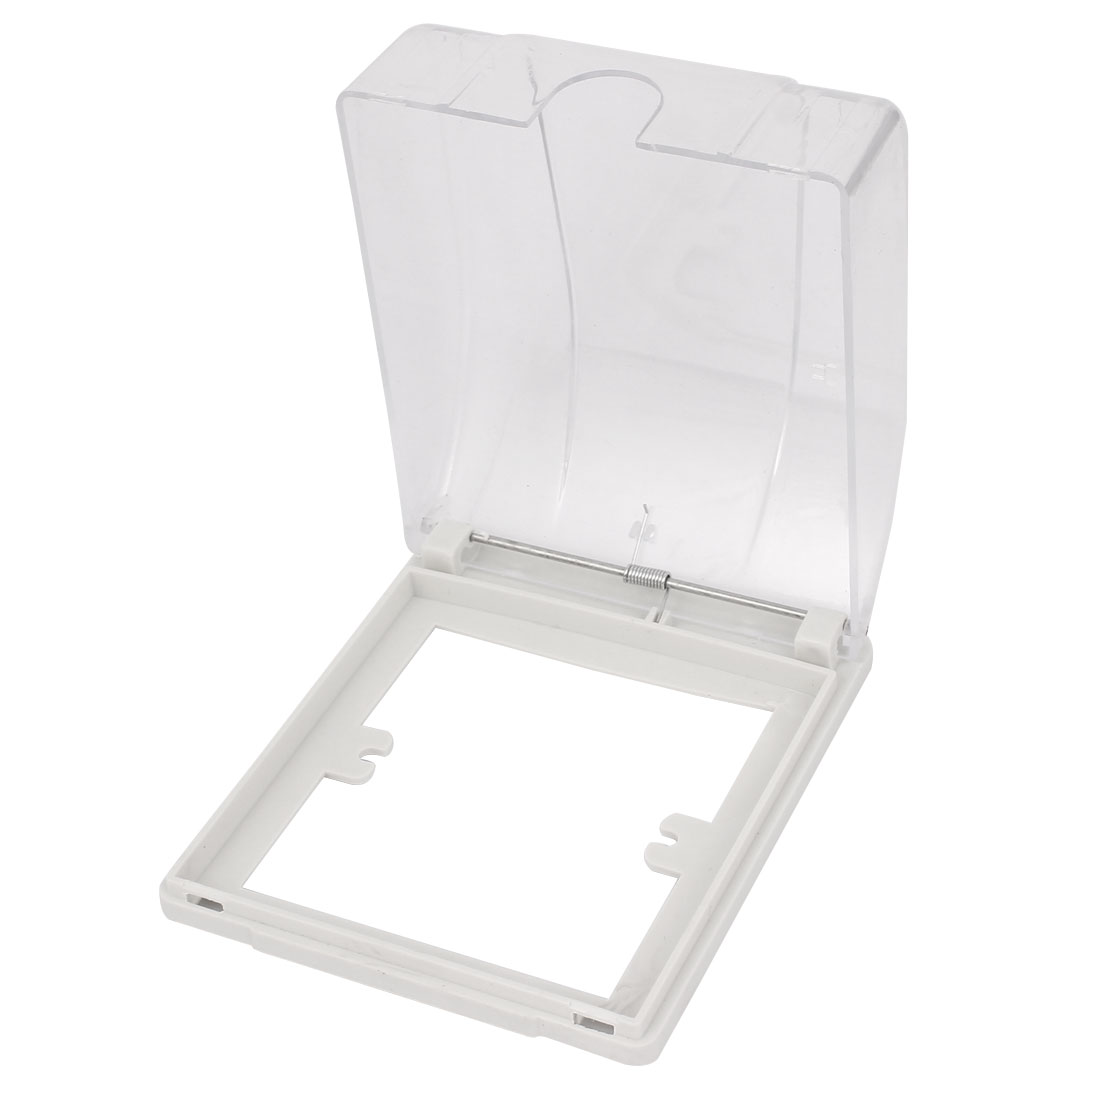 Plastic Wallpanel Splash Proof Box Holder for 88mm x 88mm Switch Socket